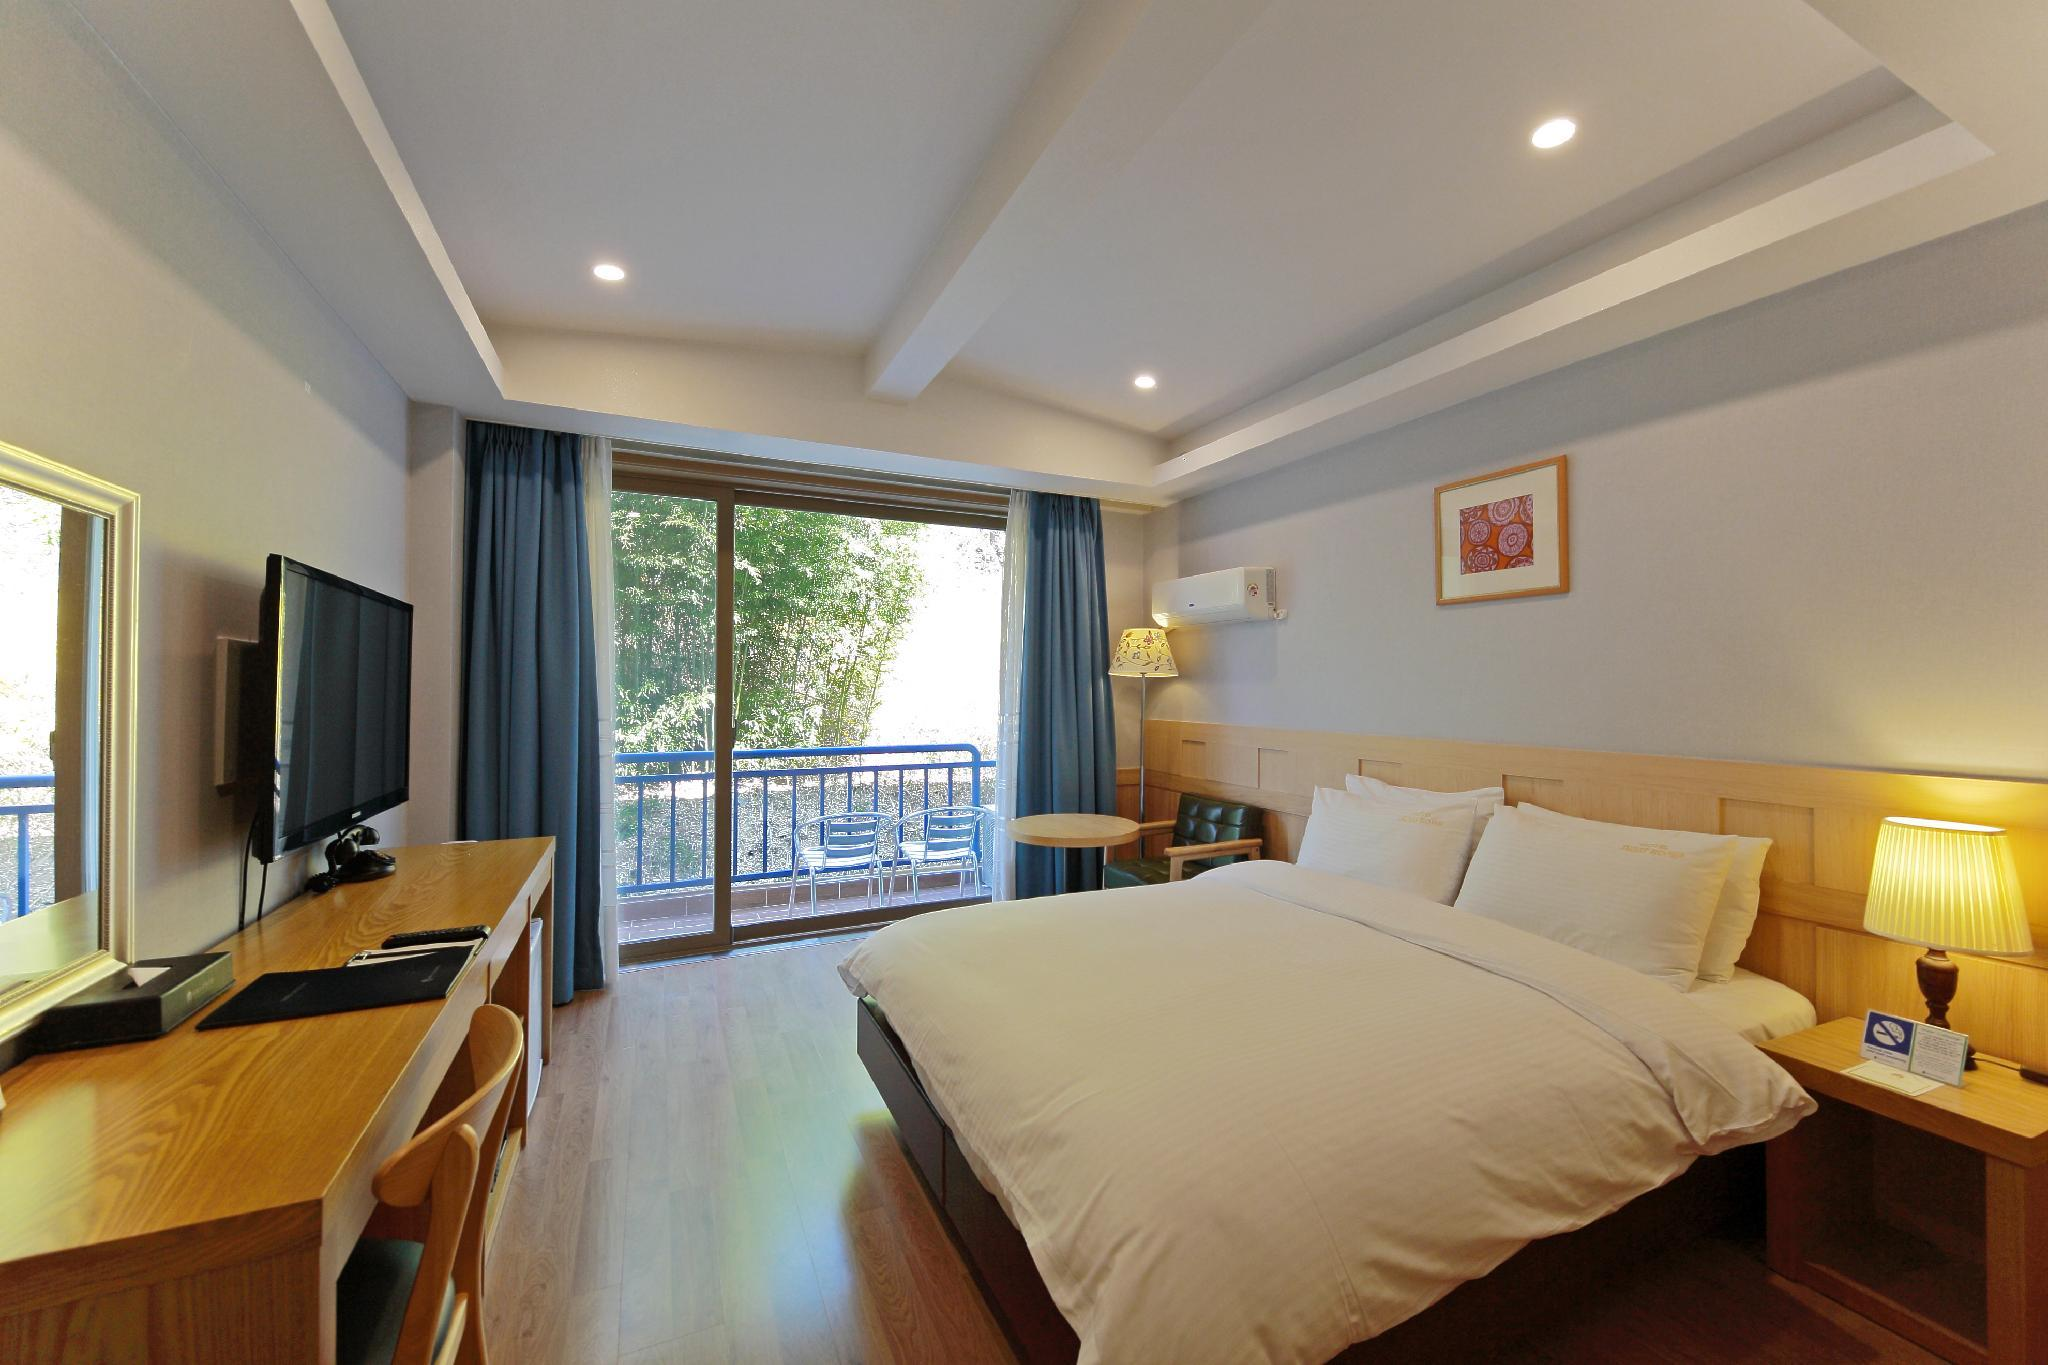 Standard Double - Kamar Saja (Standard Double - room only)